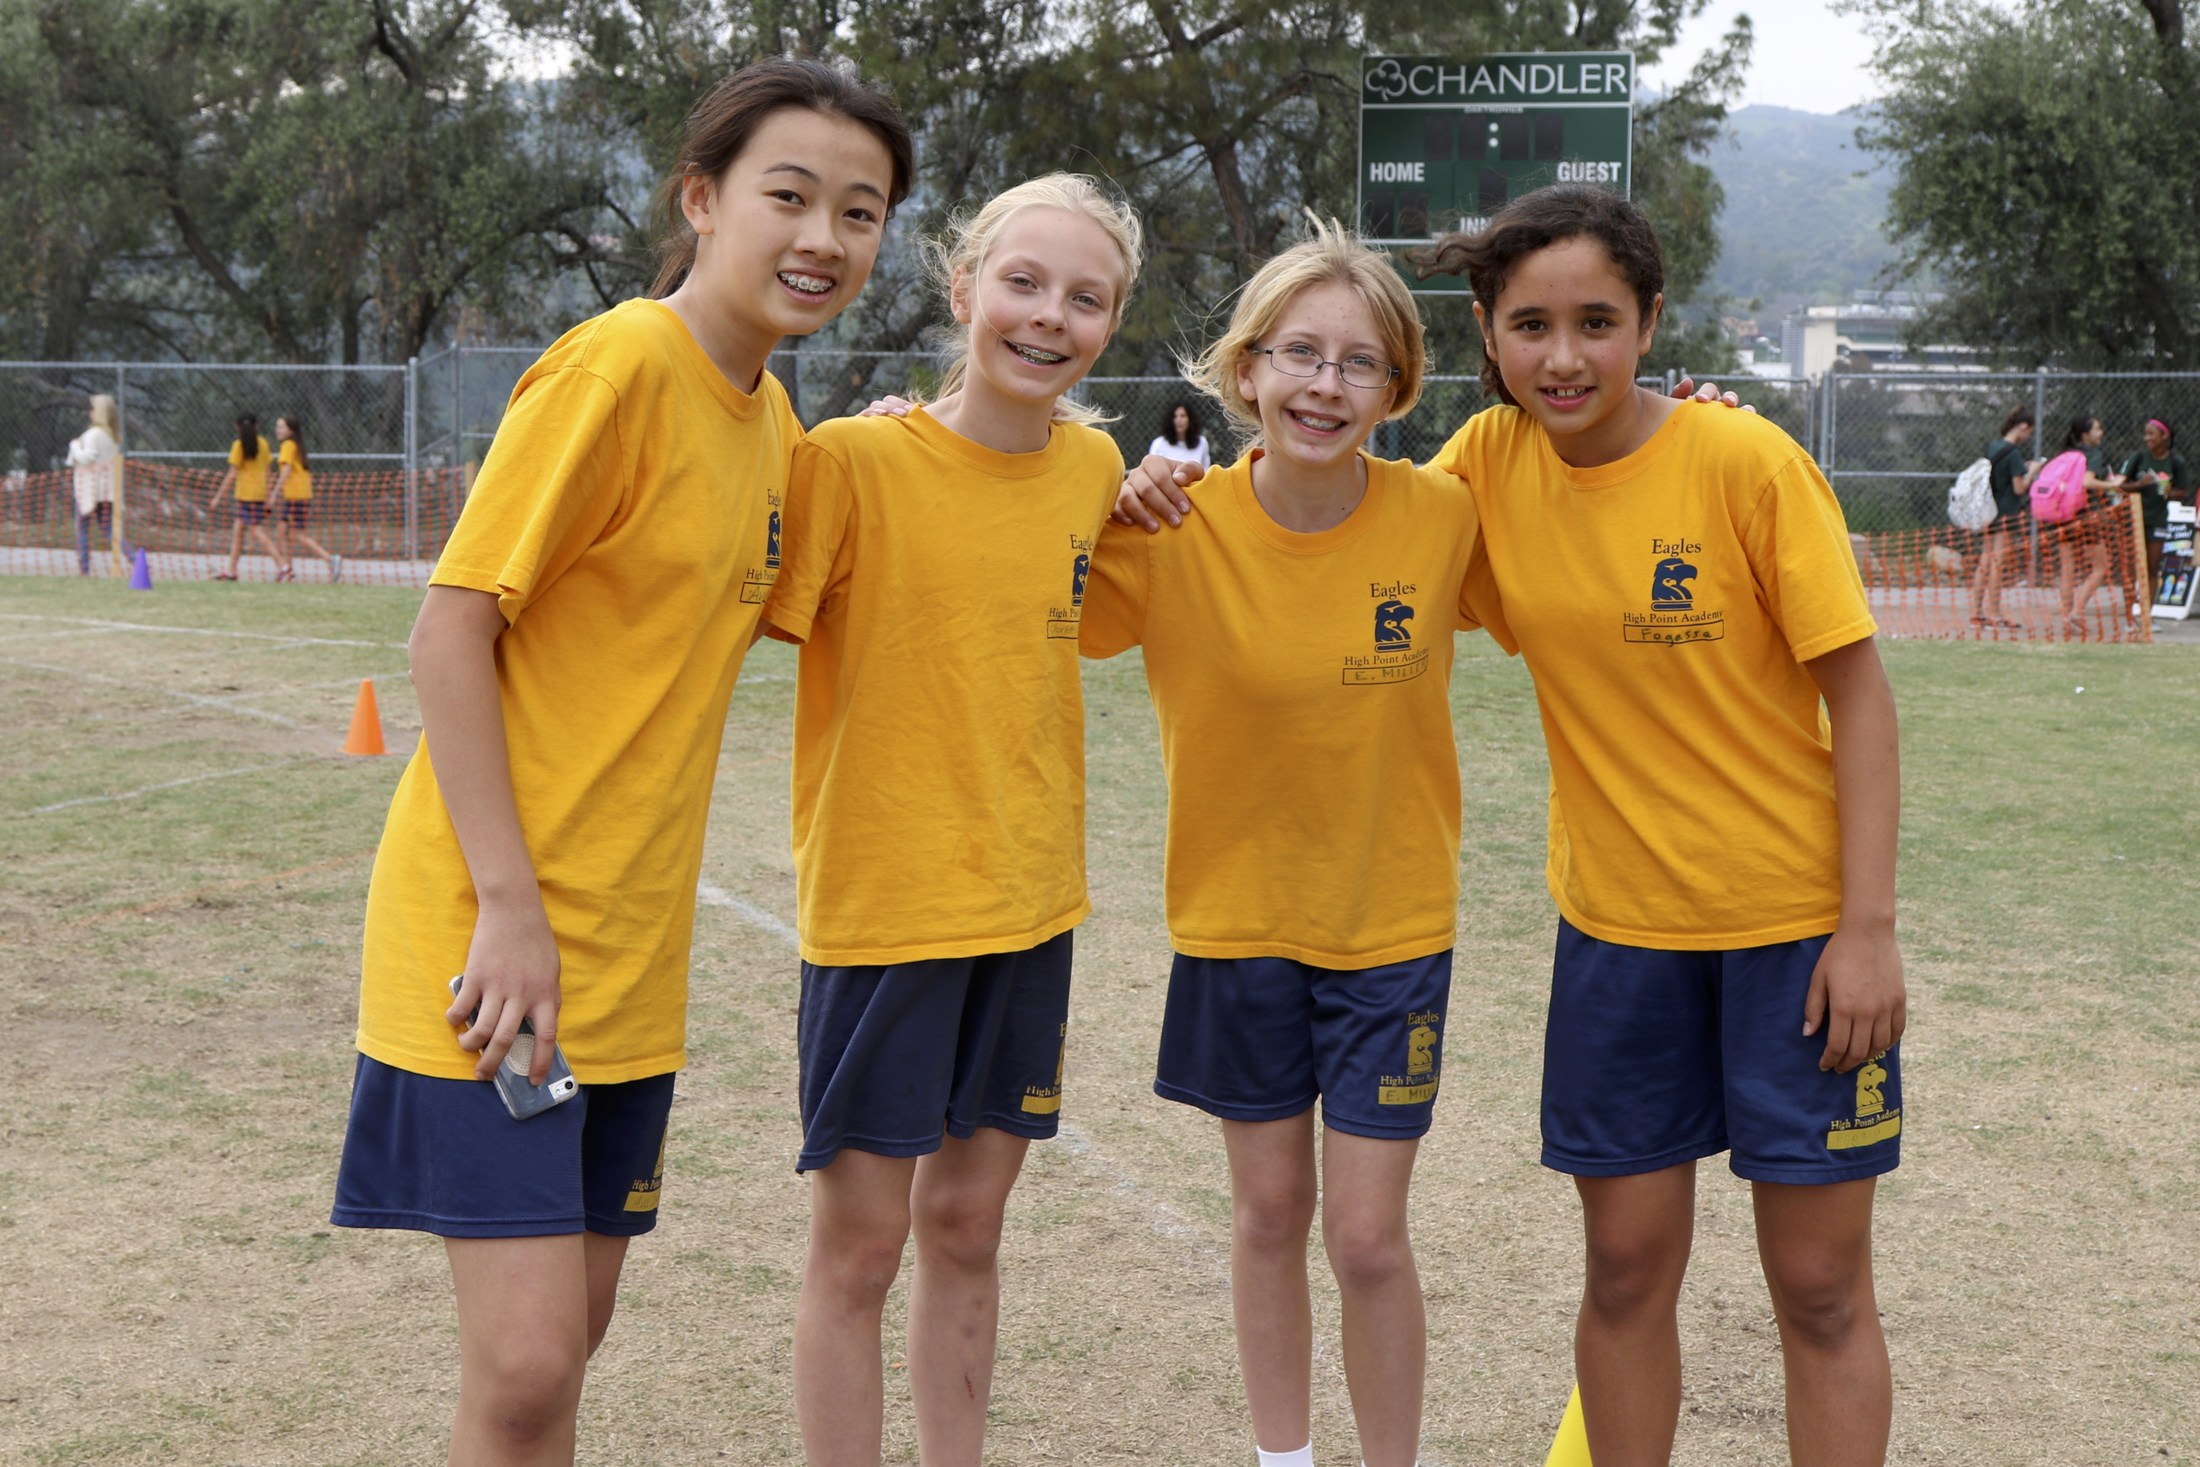 track and field relay team